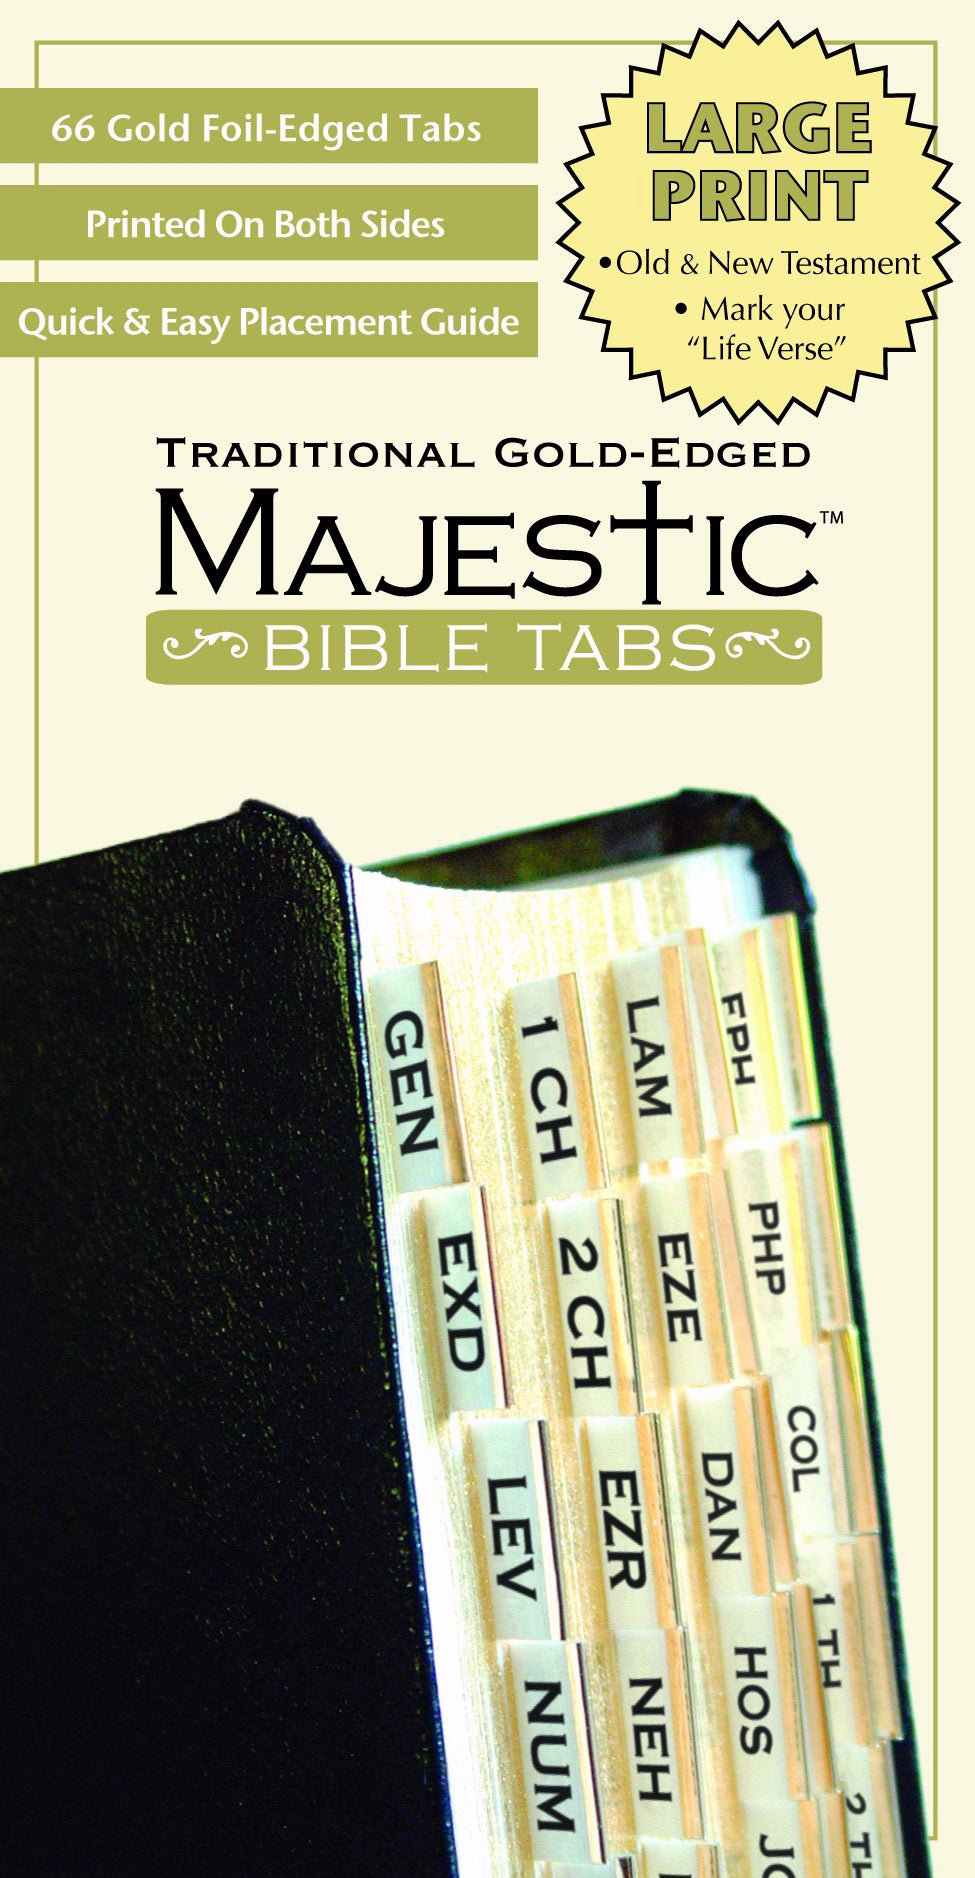 Bible Tab-Majestic-Traditional Gold Edged-Large Print